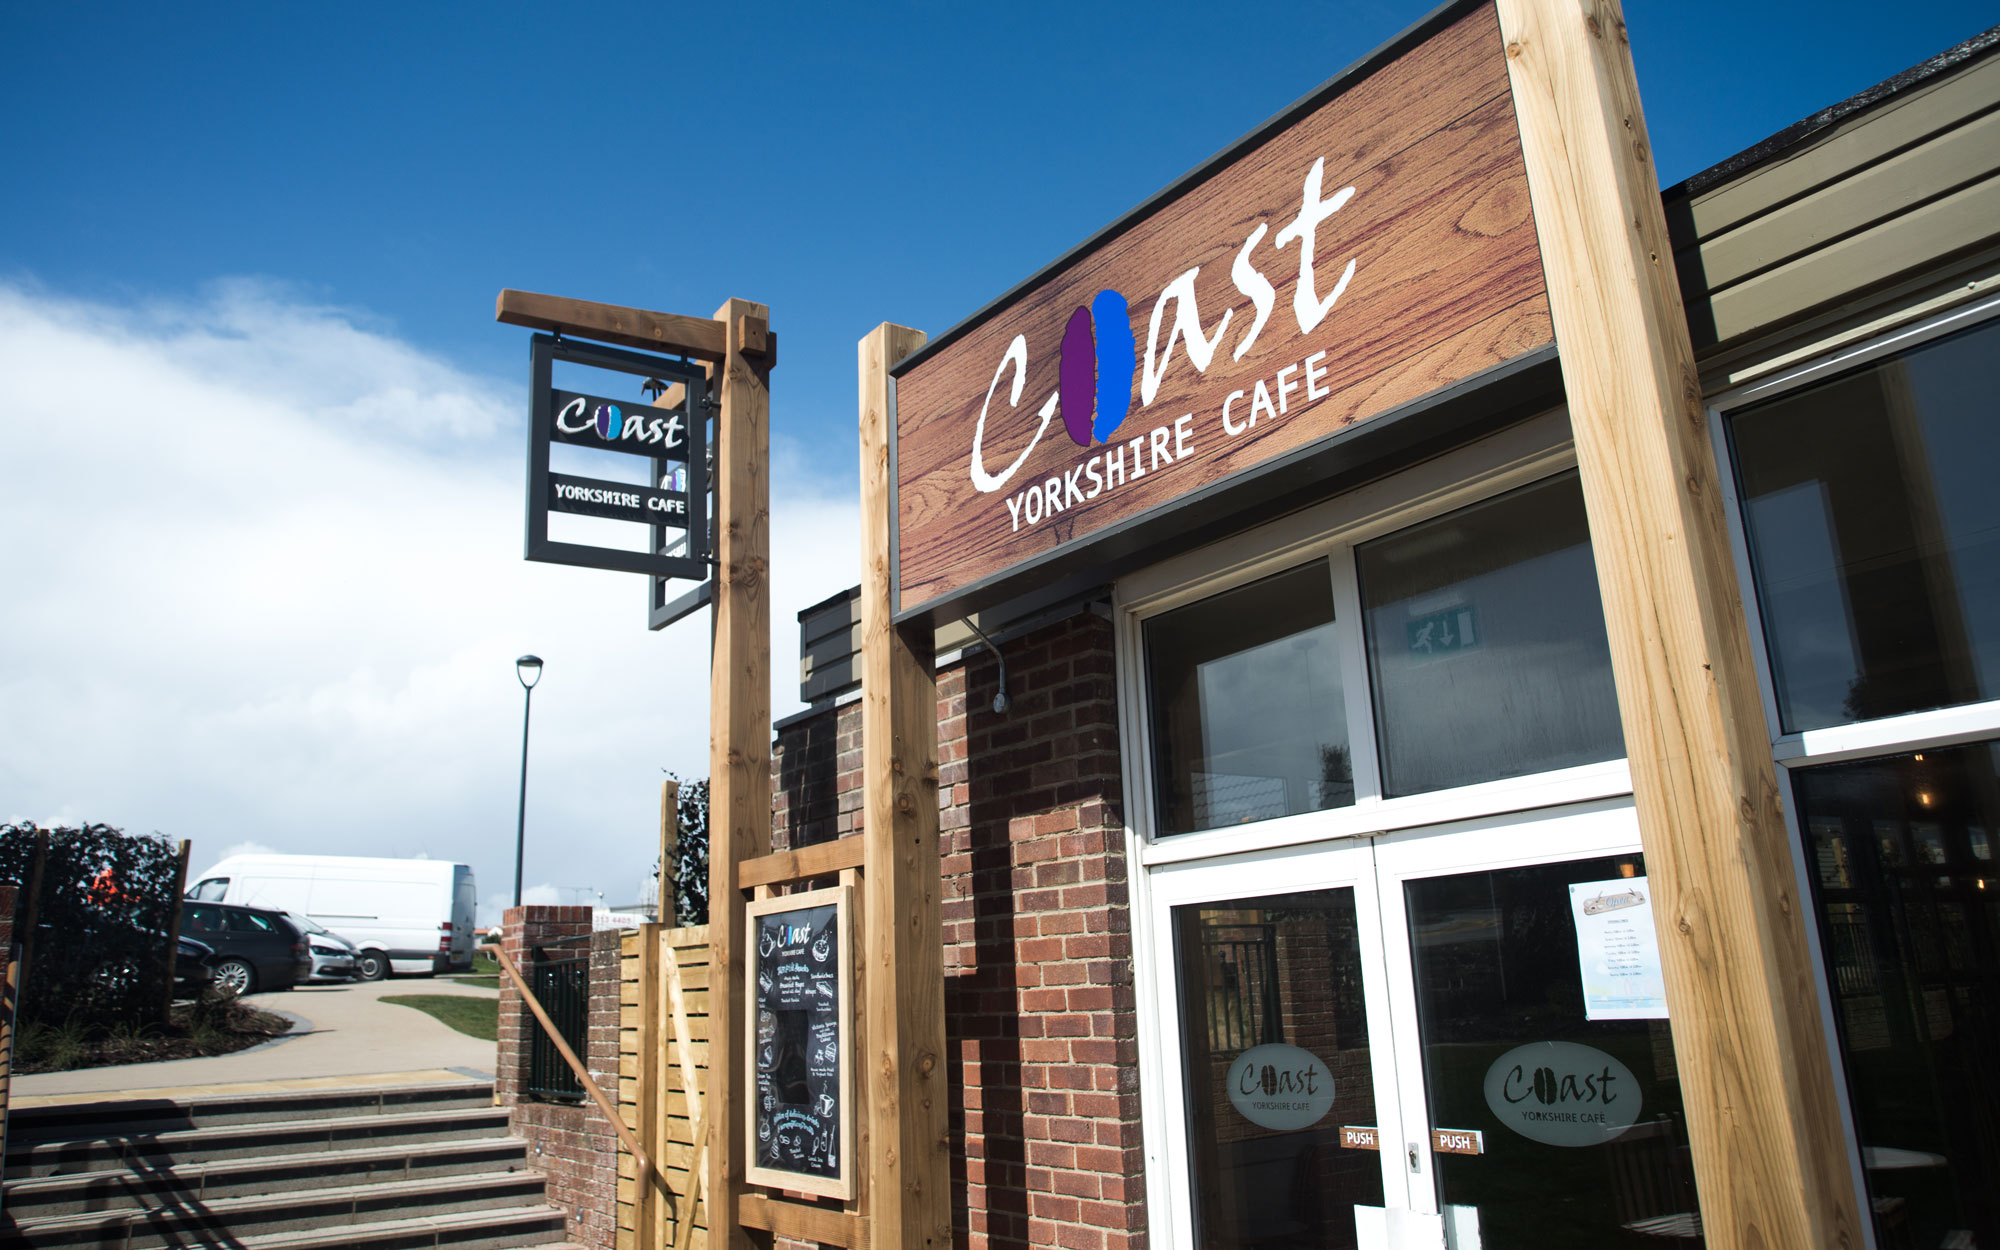 Coast Cafe at Thornwick Bay